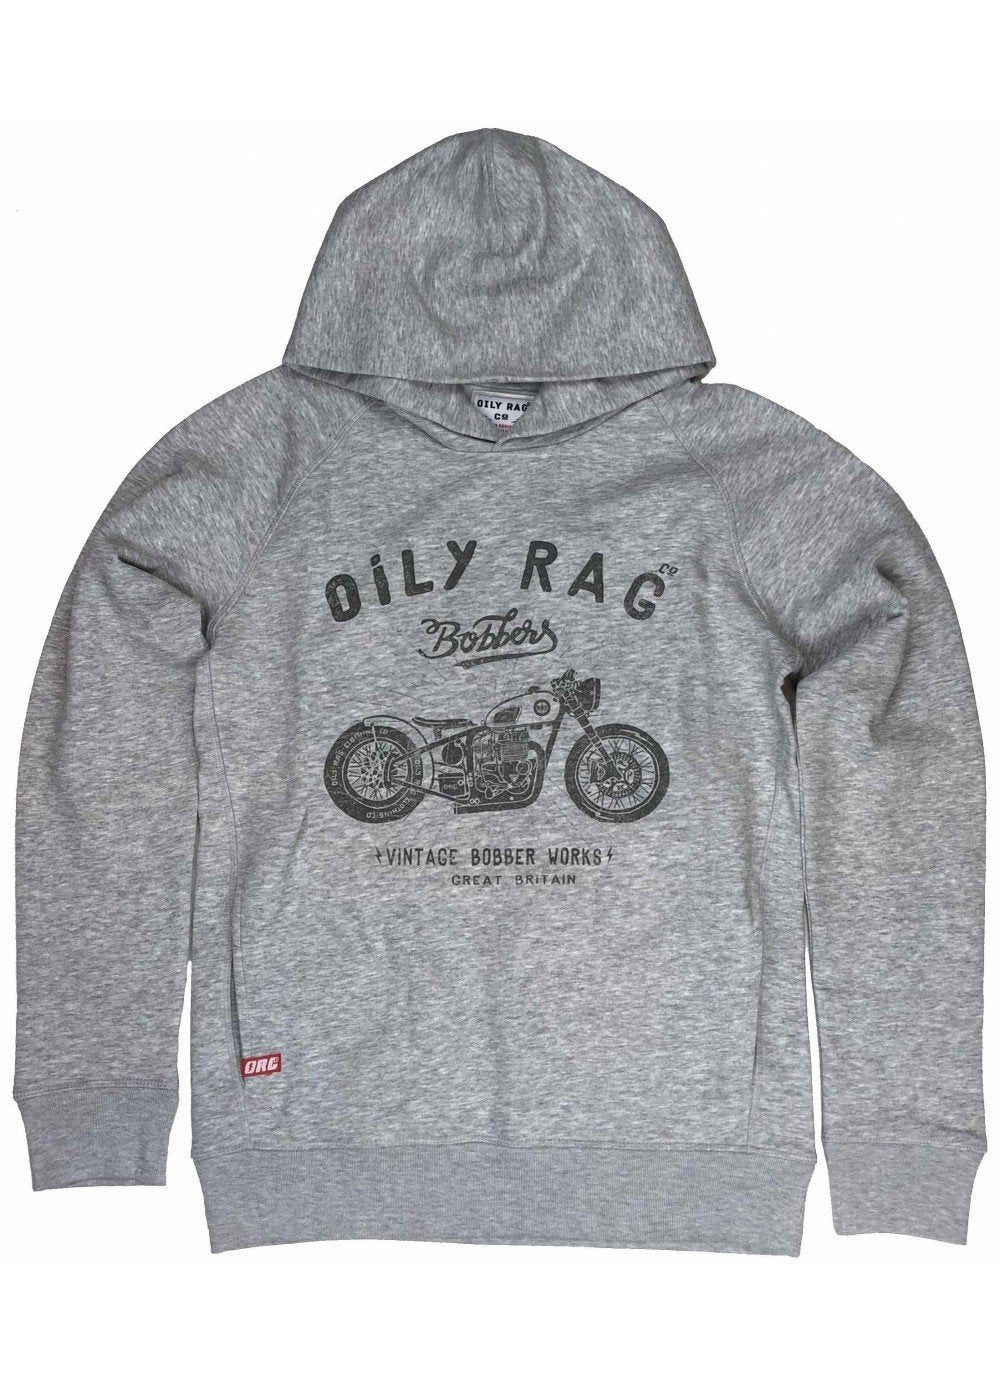 Oily Rag Clothing - Oily Rag Clothing Unisex Bobber Werke schwarz Label Hoodie - Hoodies | Sweatshirts | Wind Stoppers - Salt Flats Clothing